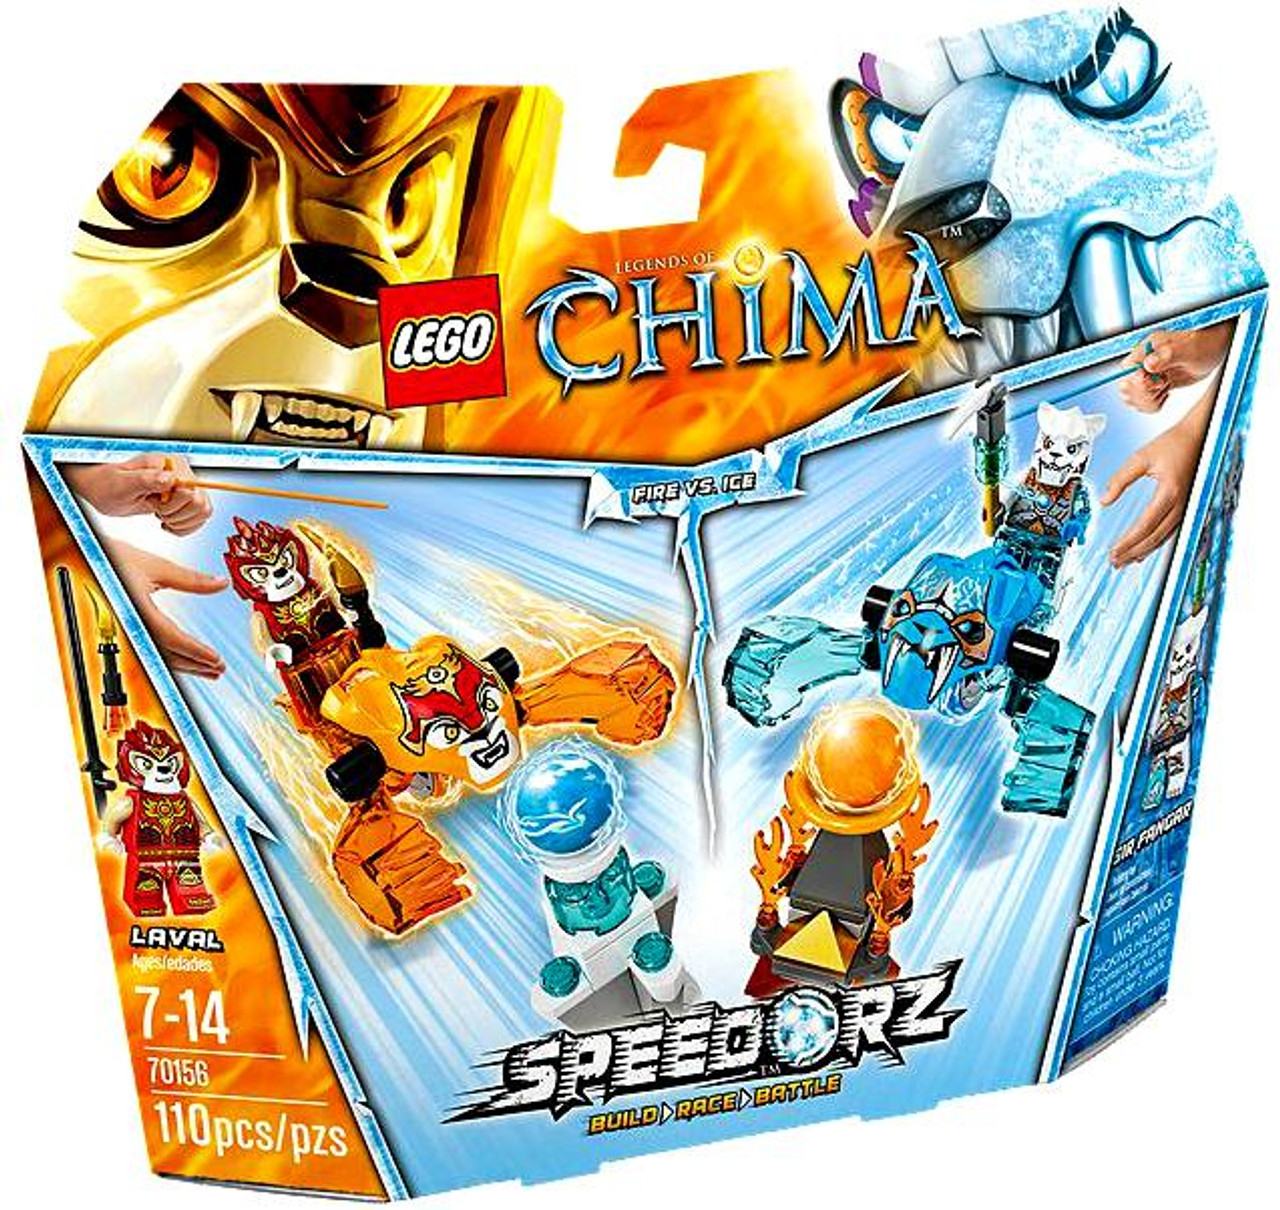 EWAR with Accessories Check Pictures New LEGO CHIMA MUST HAVE!